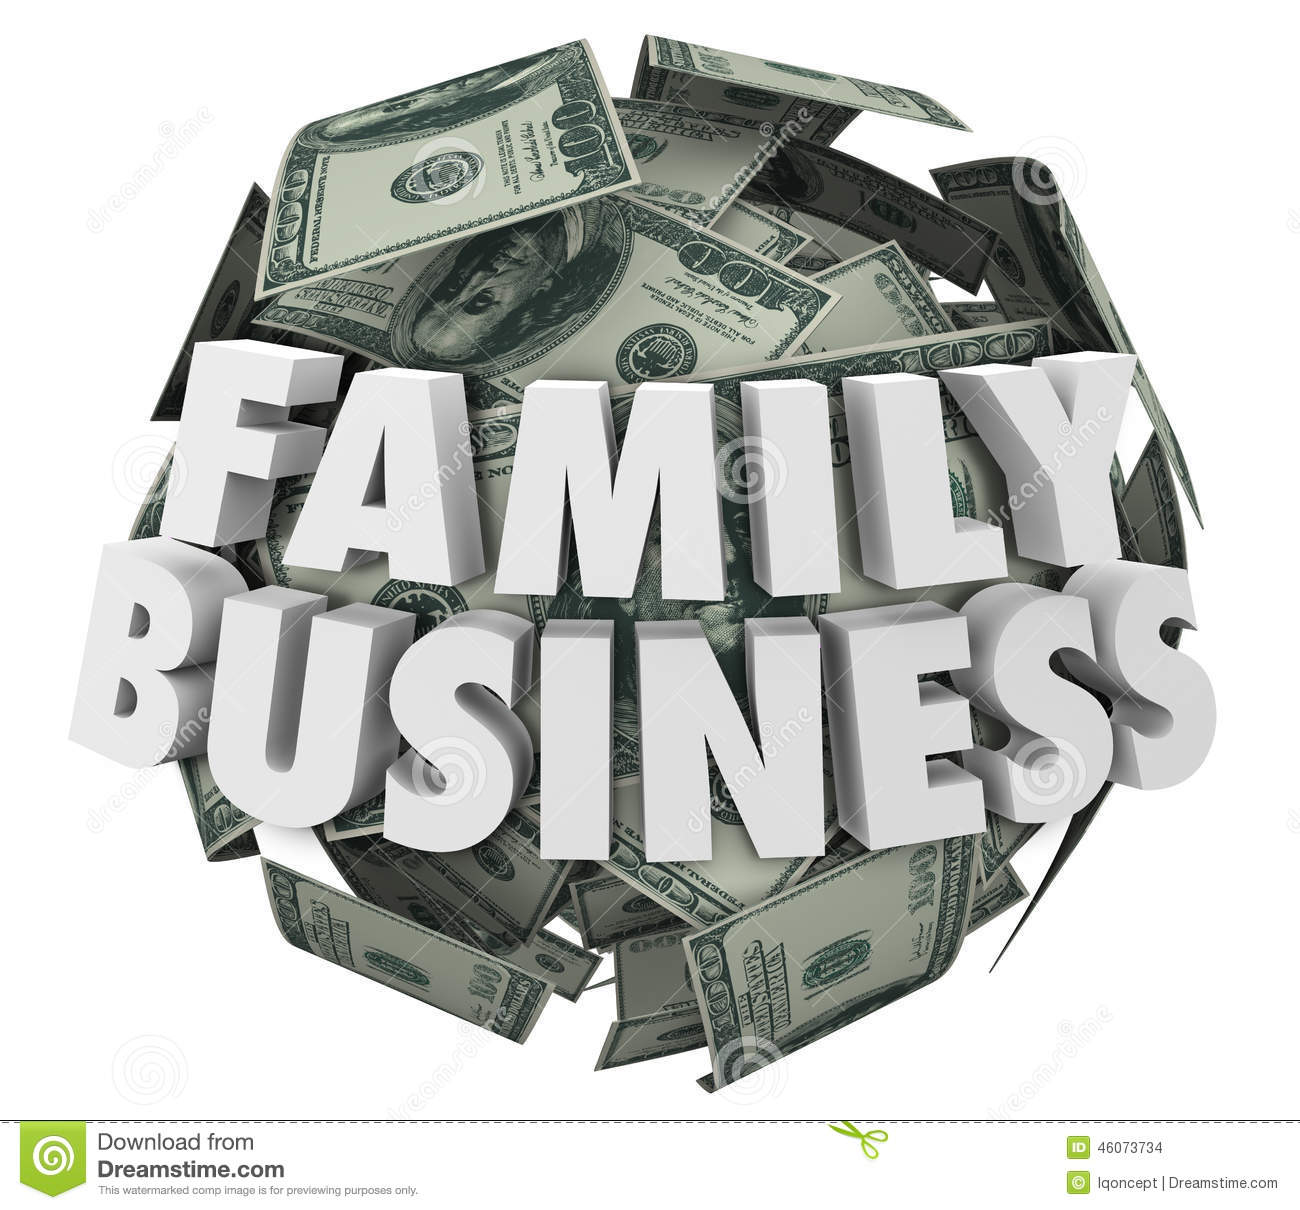 family business clipart - photo #35